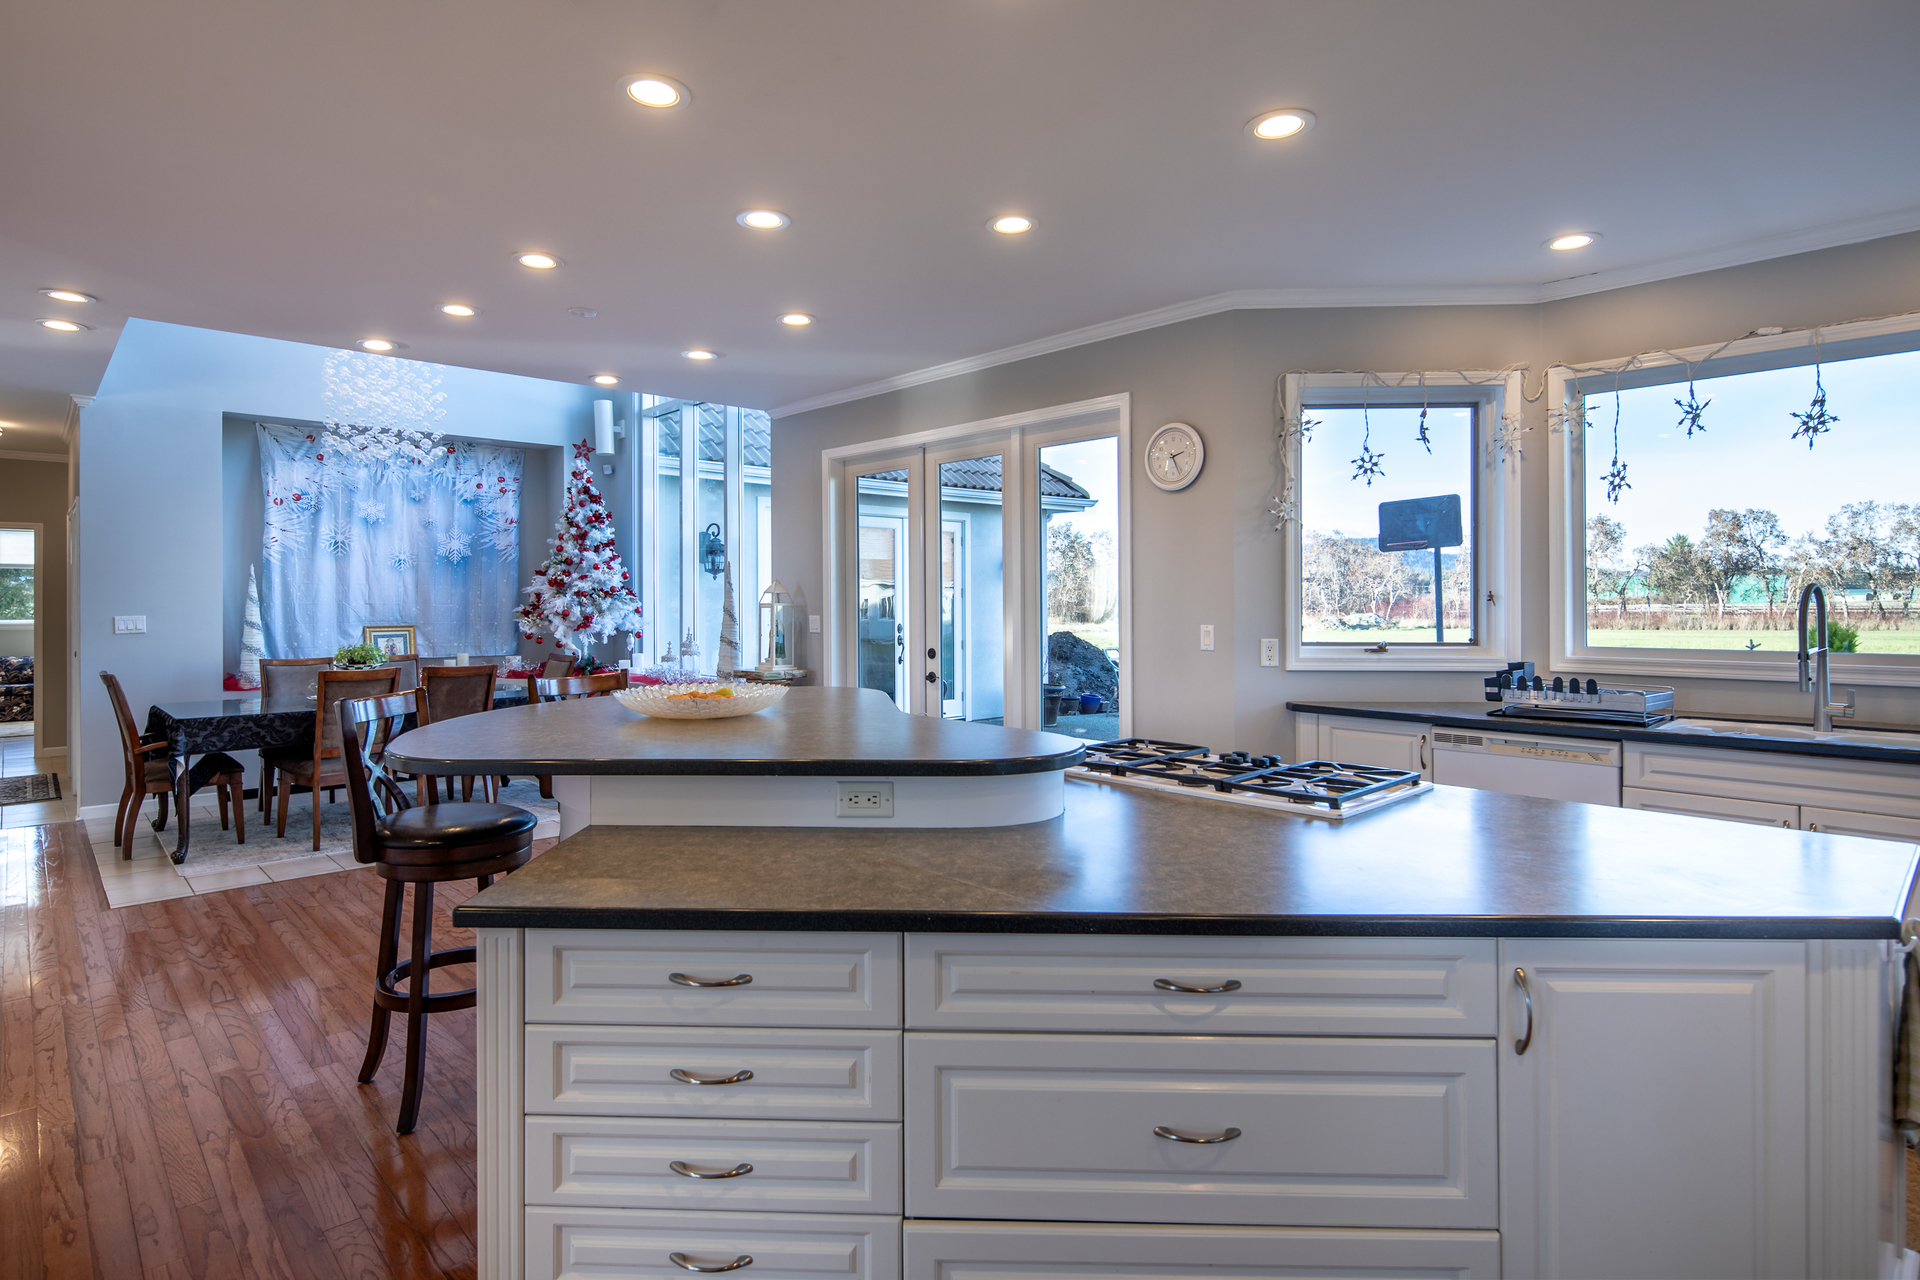 Kitchen at 1950 Highfield Road, Keating, Central Saanich